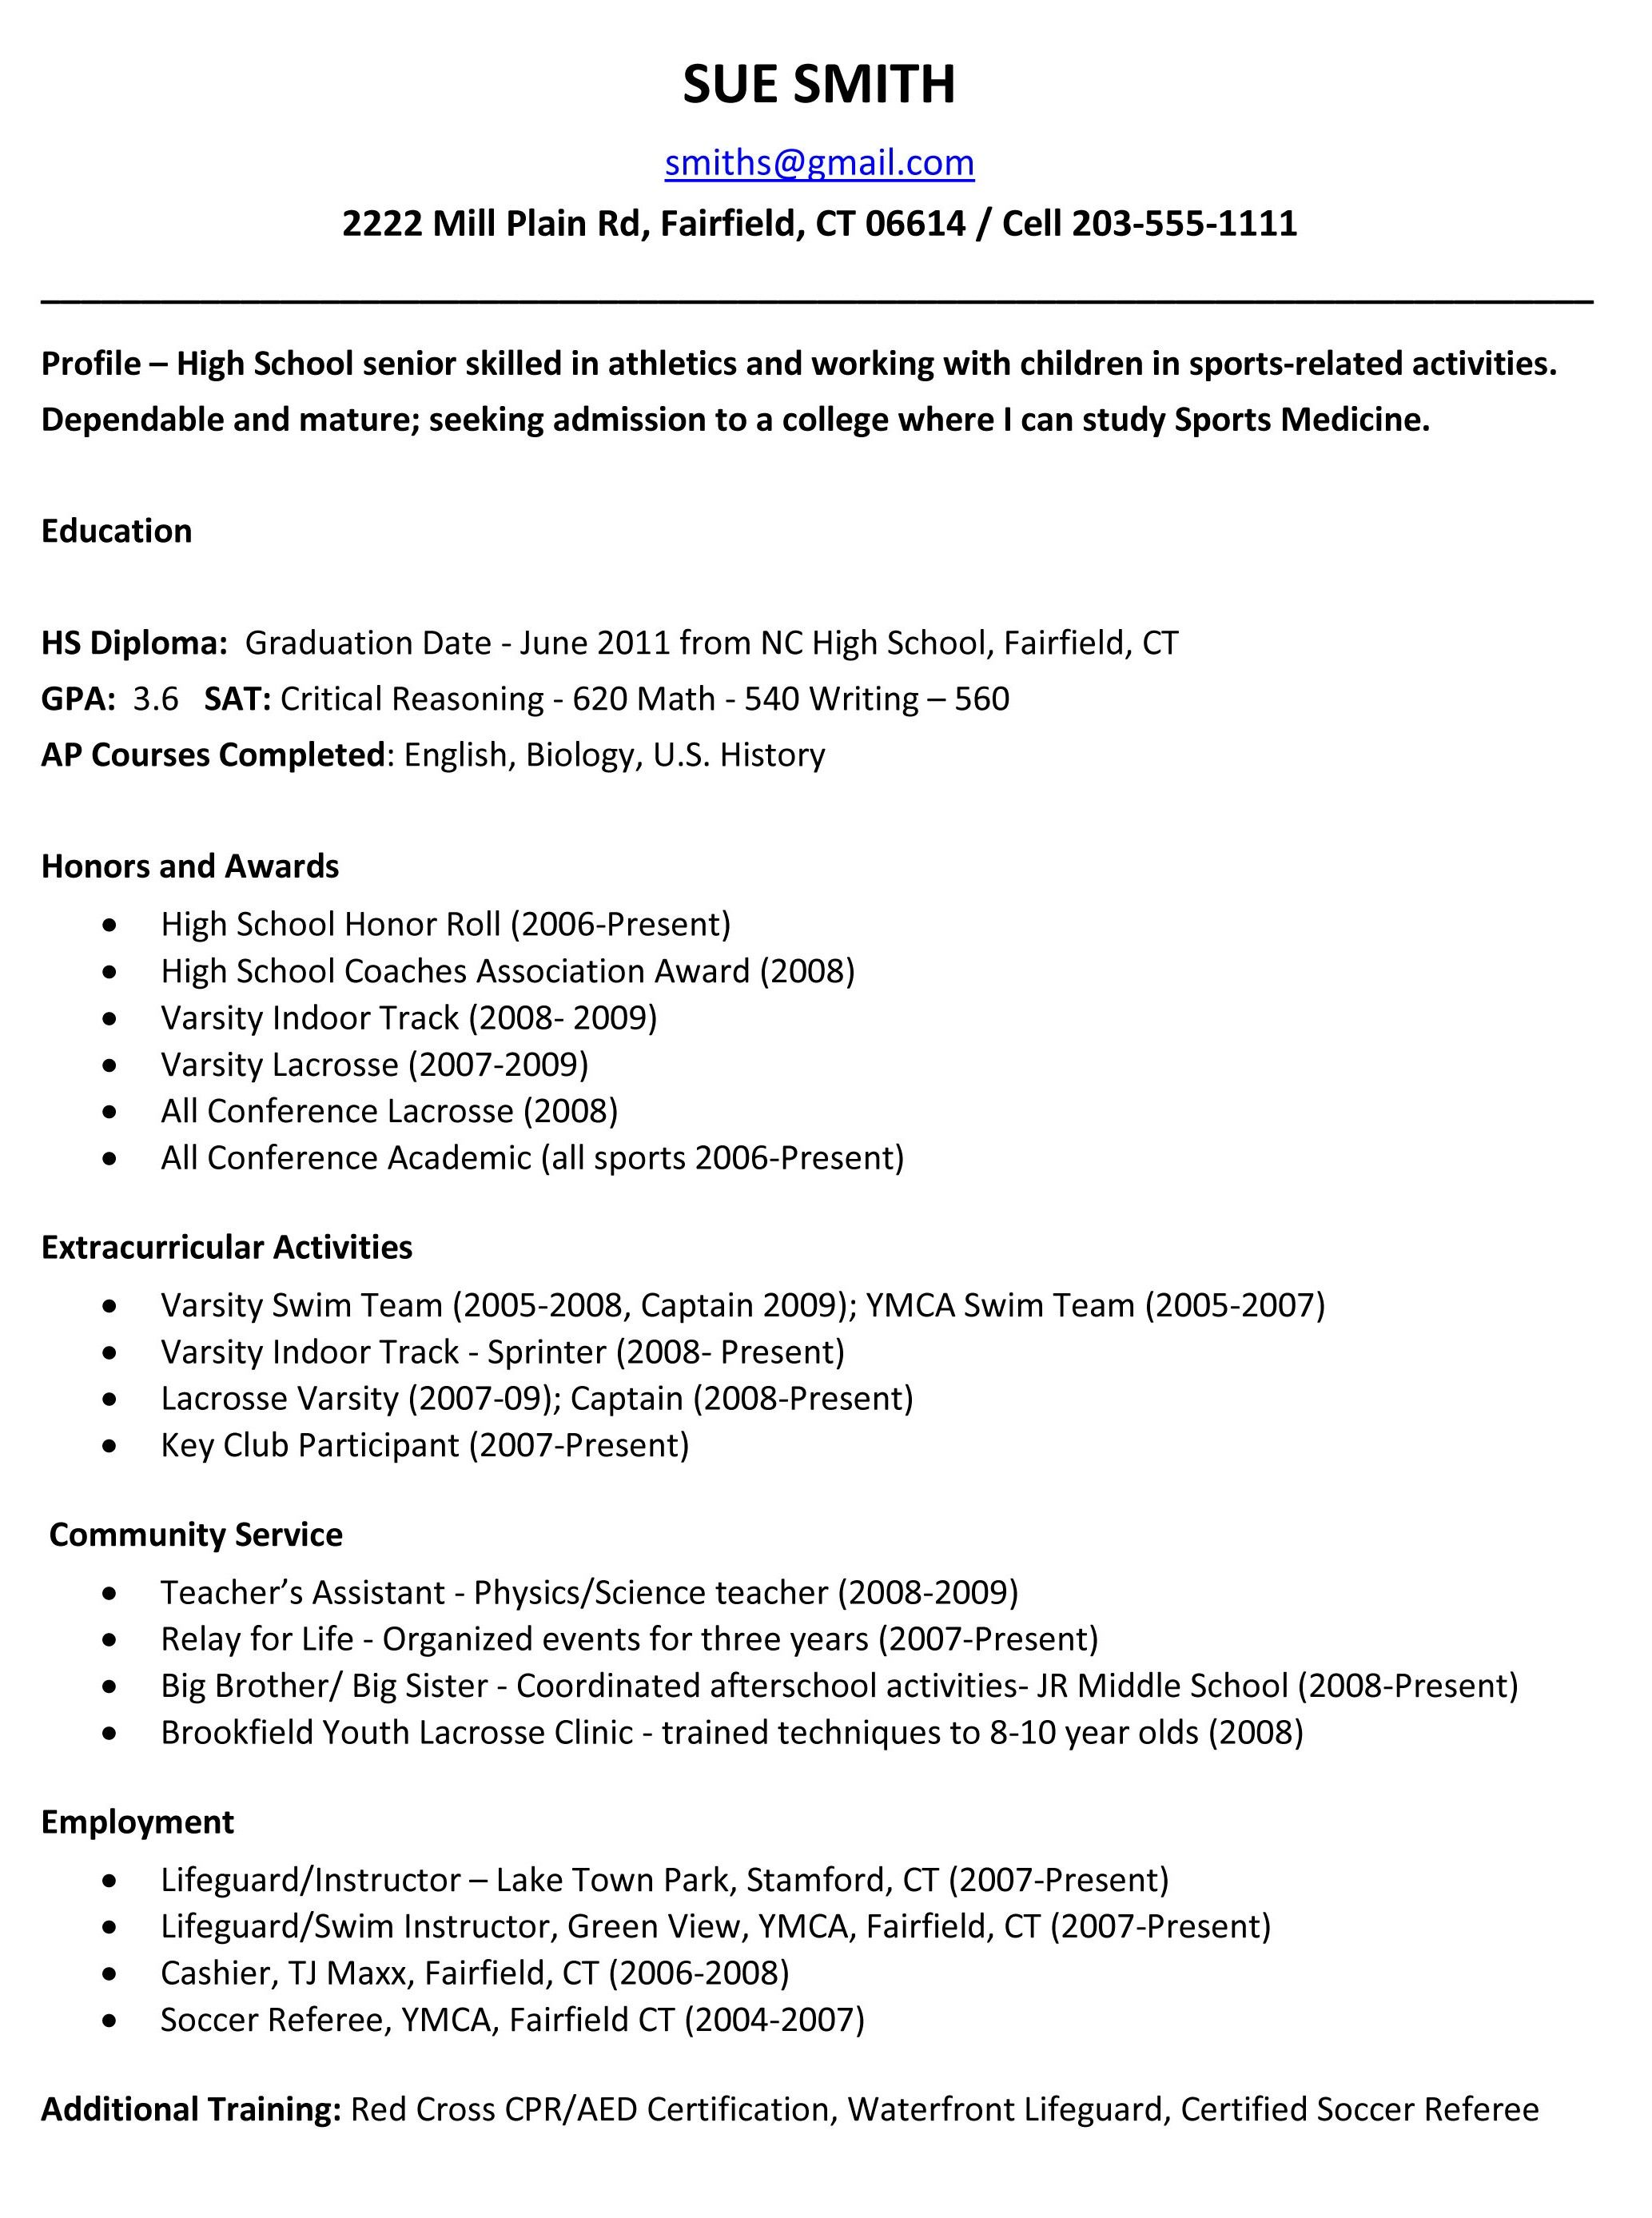 Samples Of Resumes For College Students Example Resume For High School Students For College